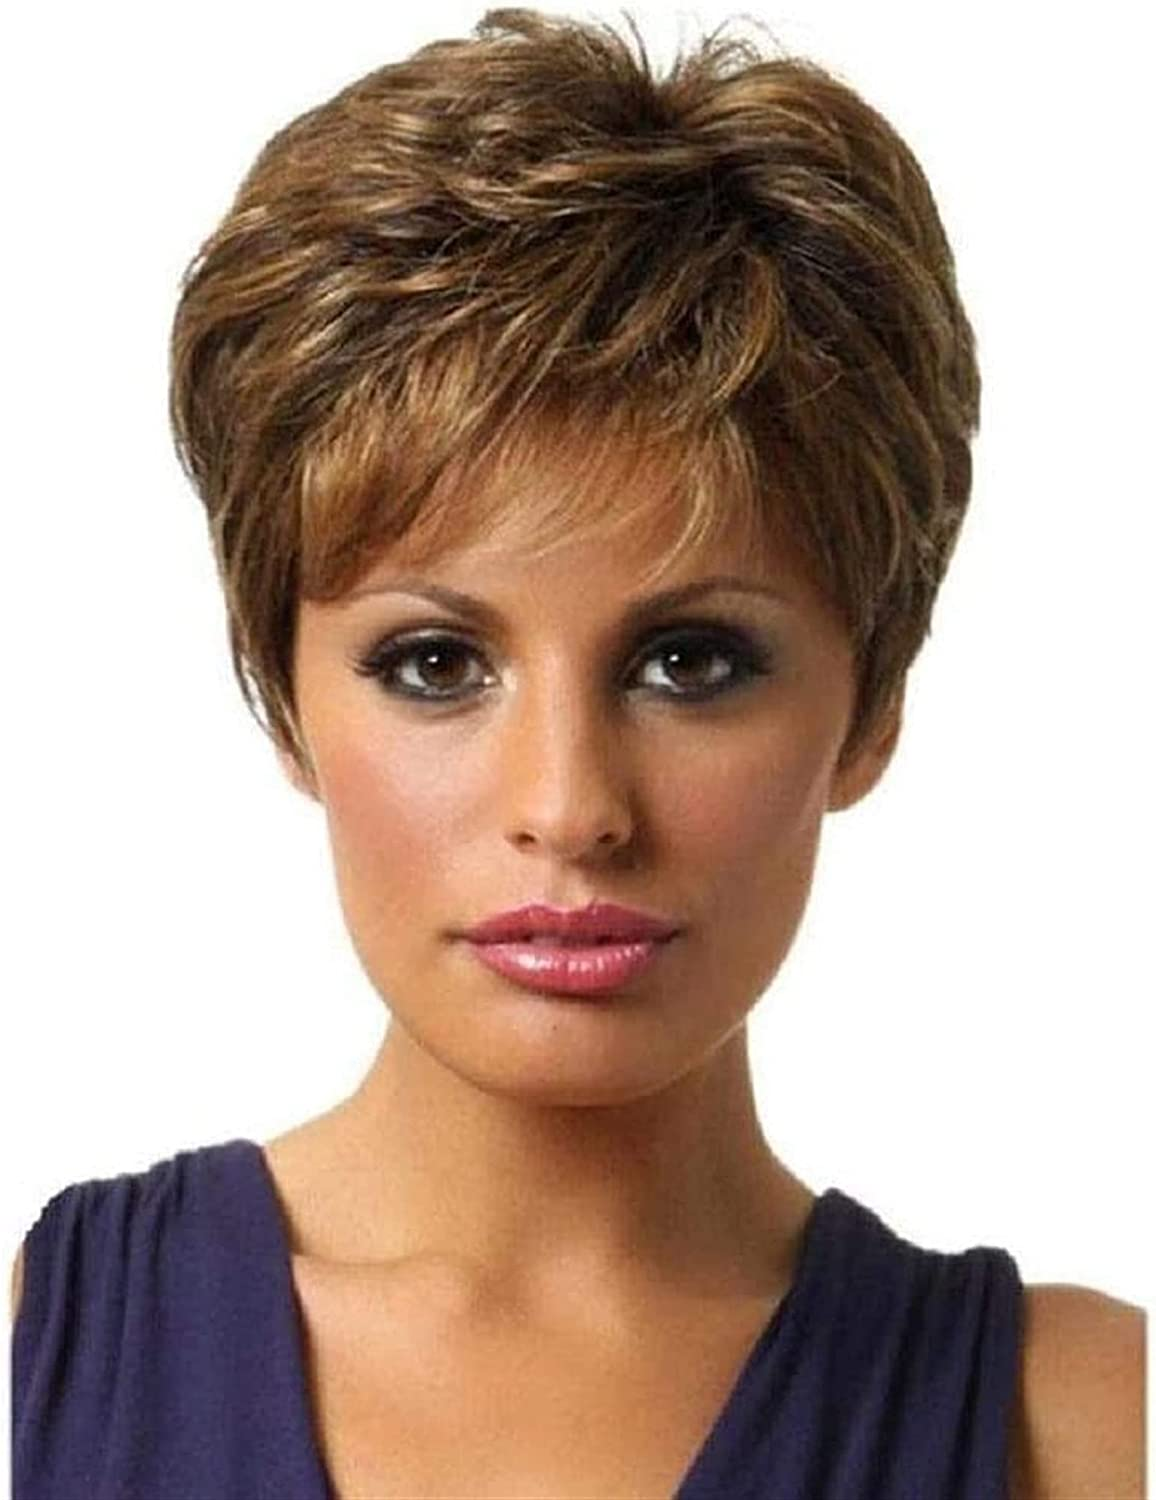 LCNING Max 58% OFF Wig Wigs Spring new work one after another Slightly Fluffy Ombre Curly Women Blo Short